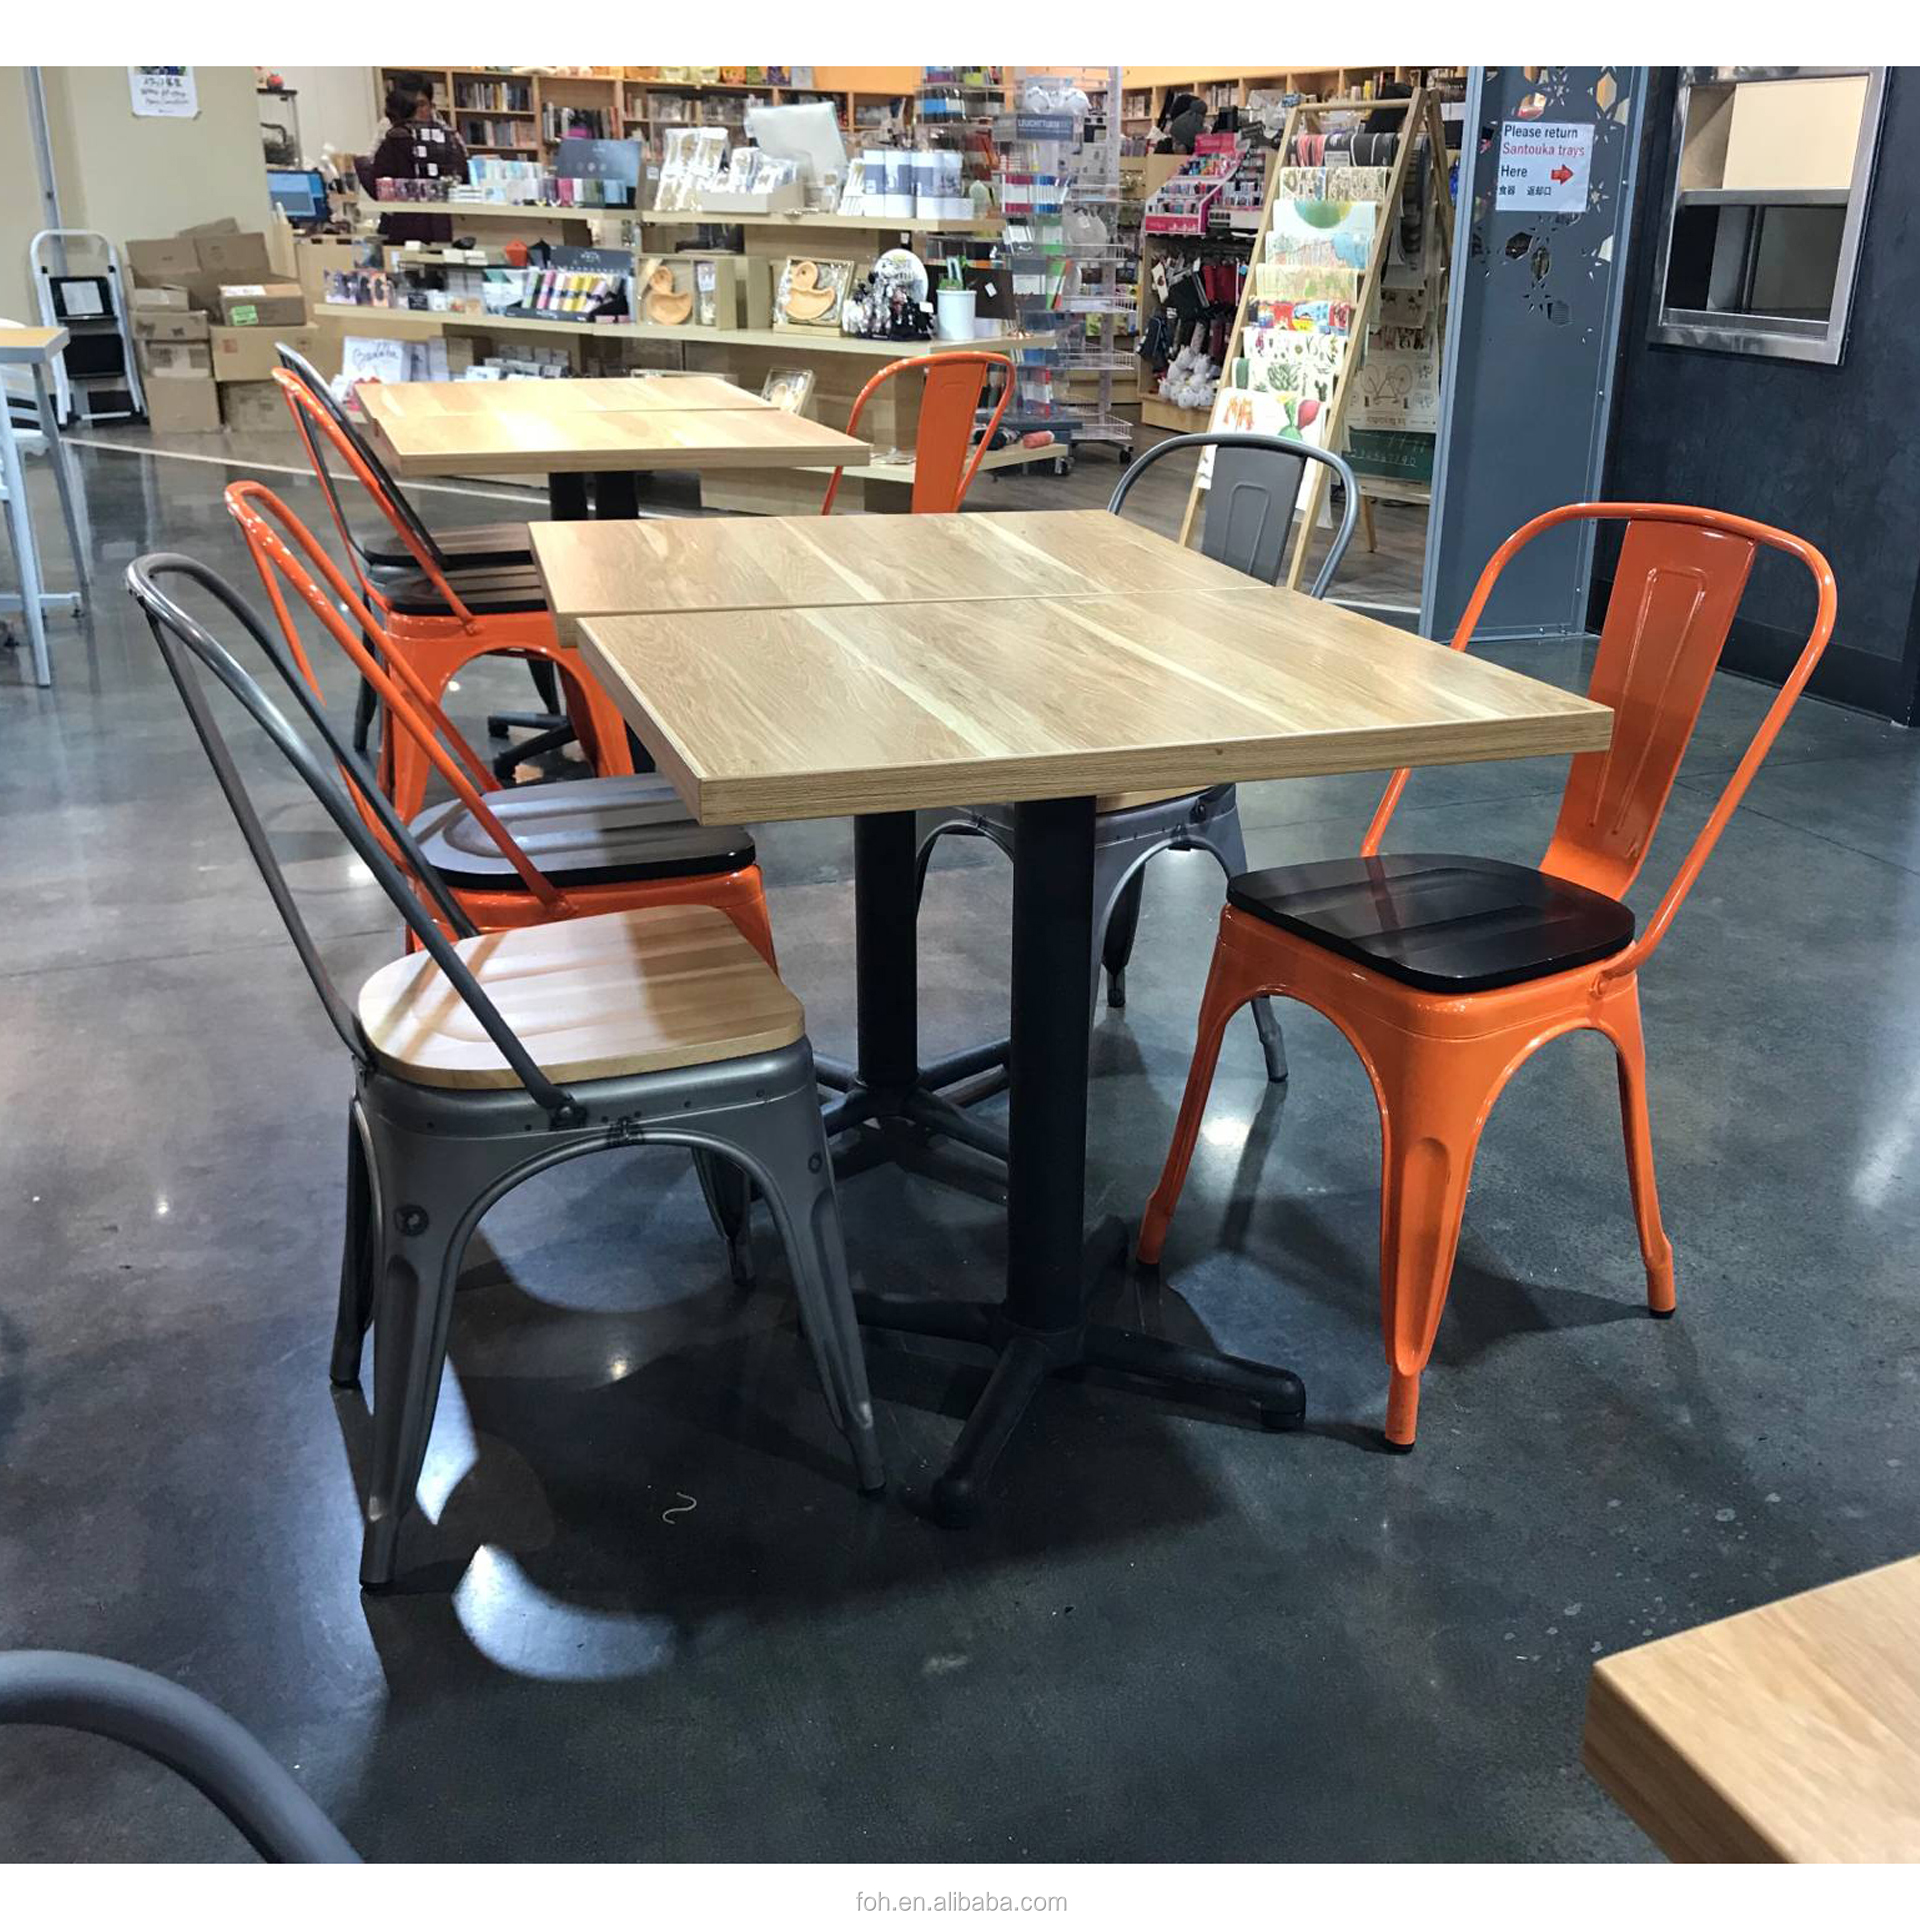 Best Sale Modern Fast Food Restaurant Furniture Booth Seating Foh Cbck08 Buy Restaurant Booth Seating Restaurant Sofa Restaurant Booths For Sale Product On Alibaba Com